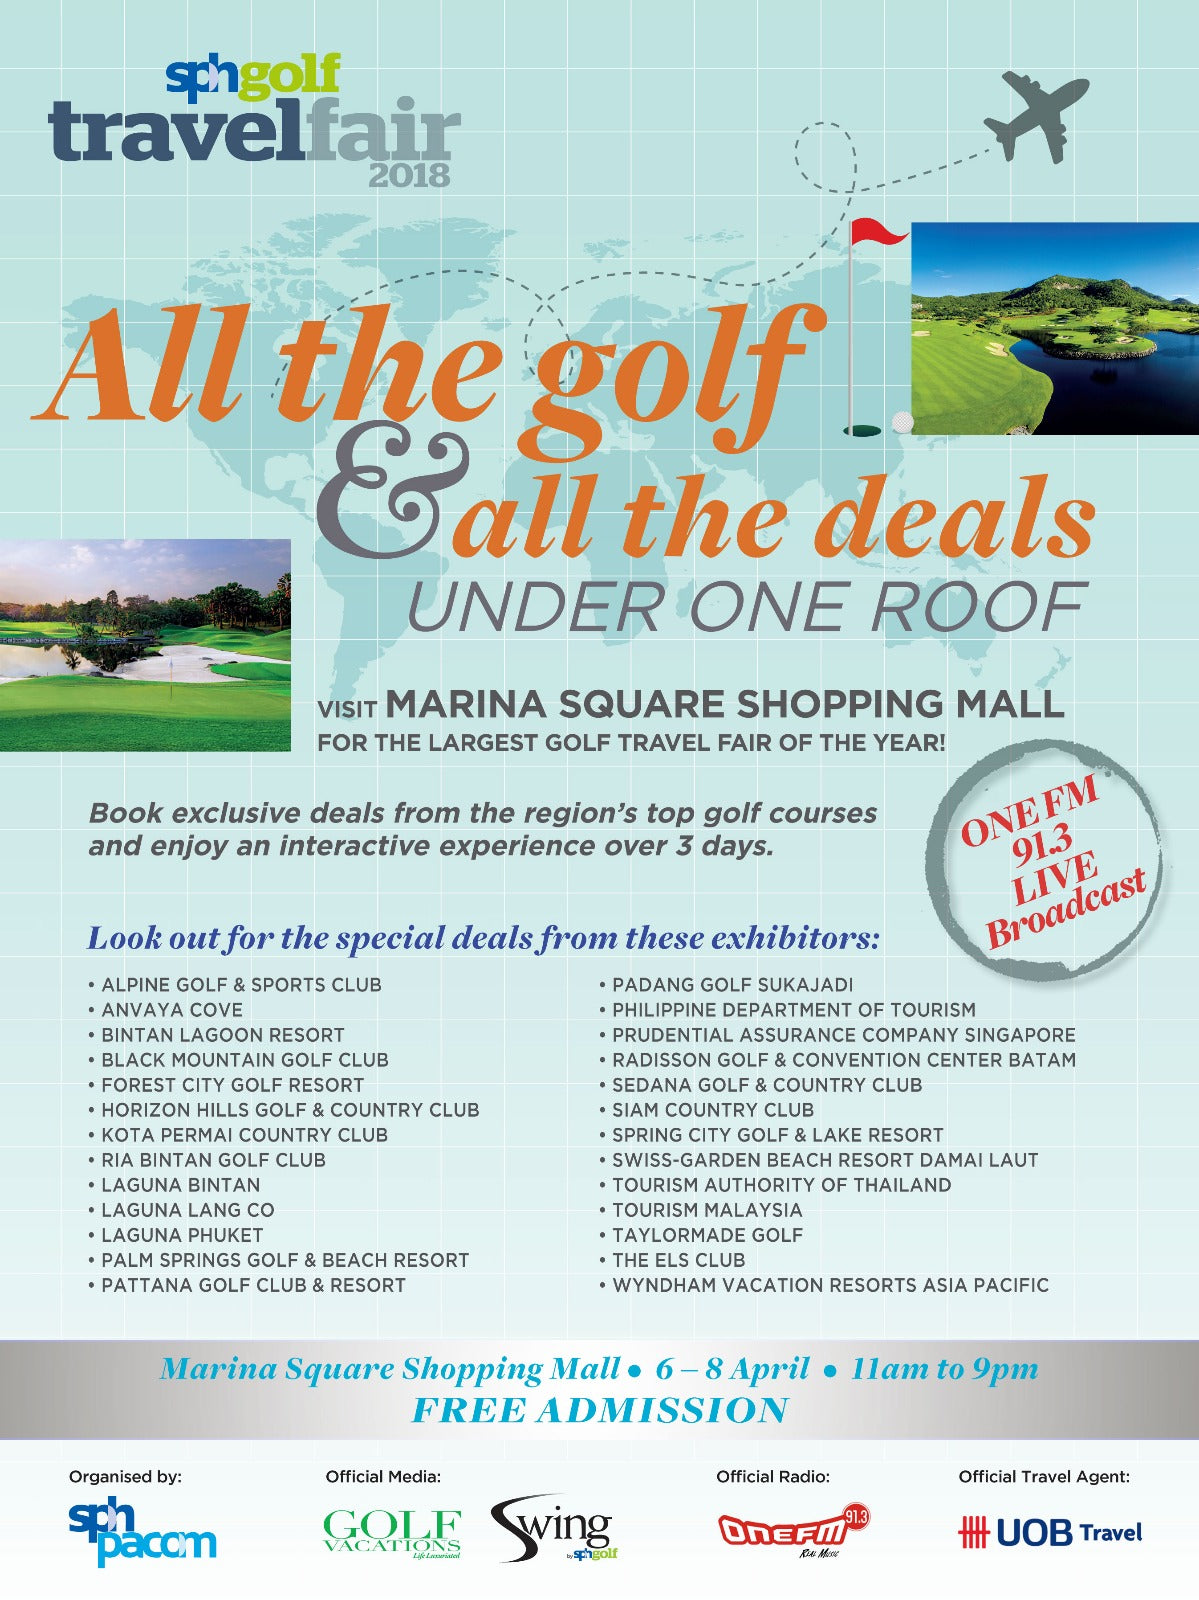 All the golf and all the deals under one roof